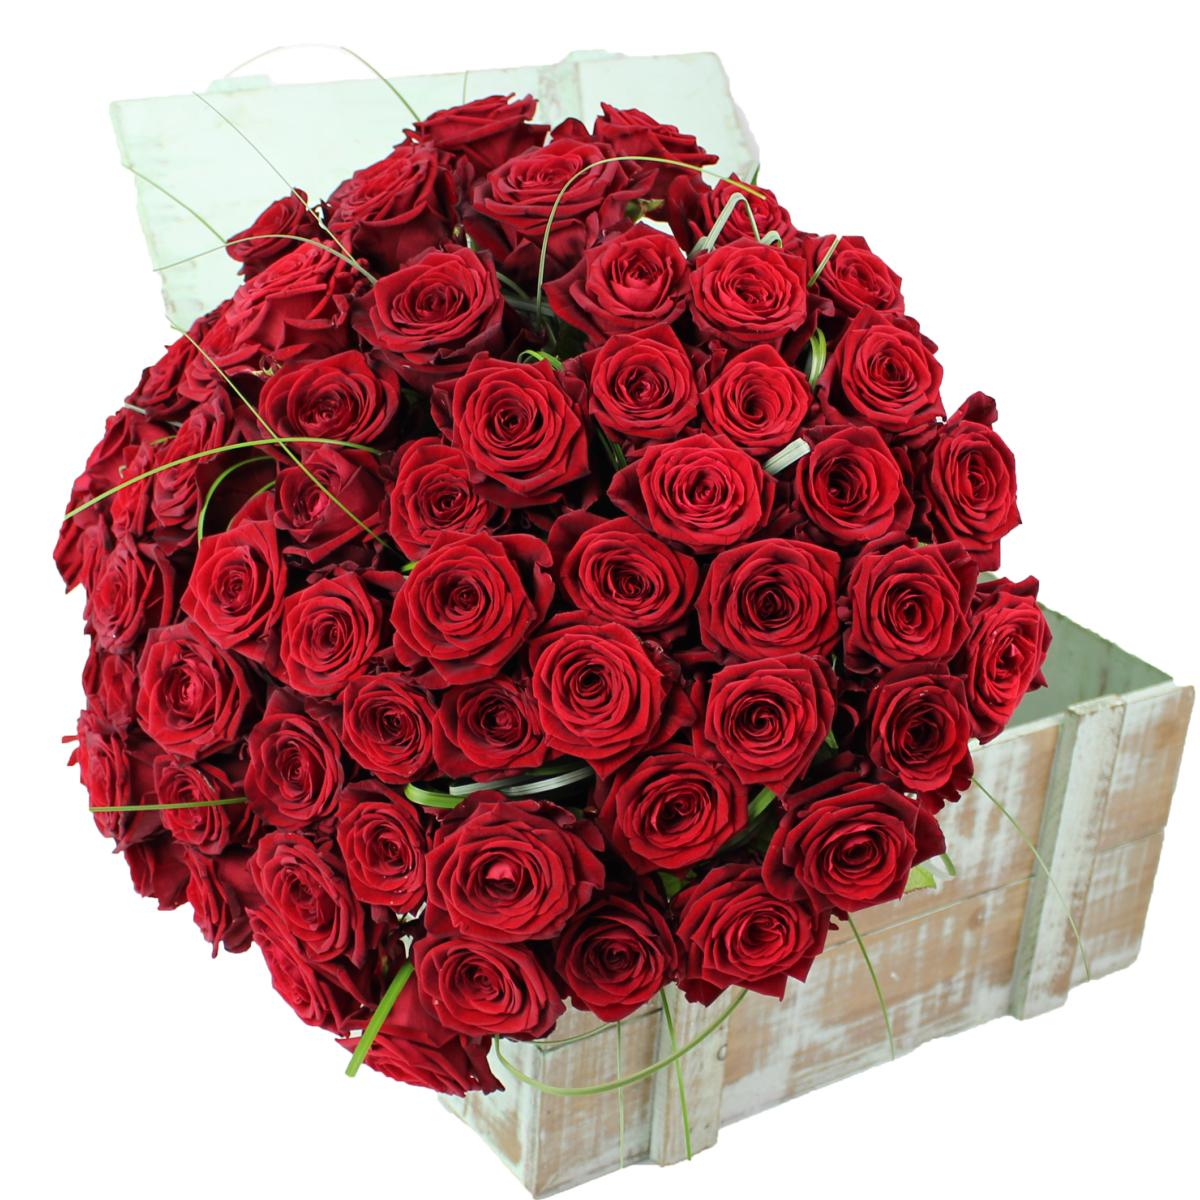 La fontaine fleurie offrir bouquet de roses rouges red naomi for Bouquets de roses